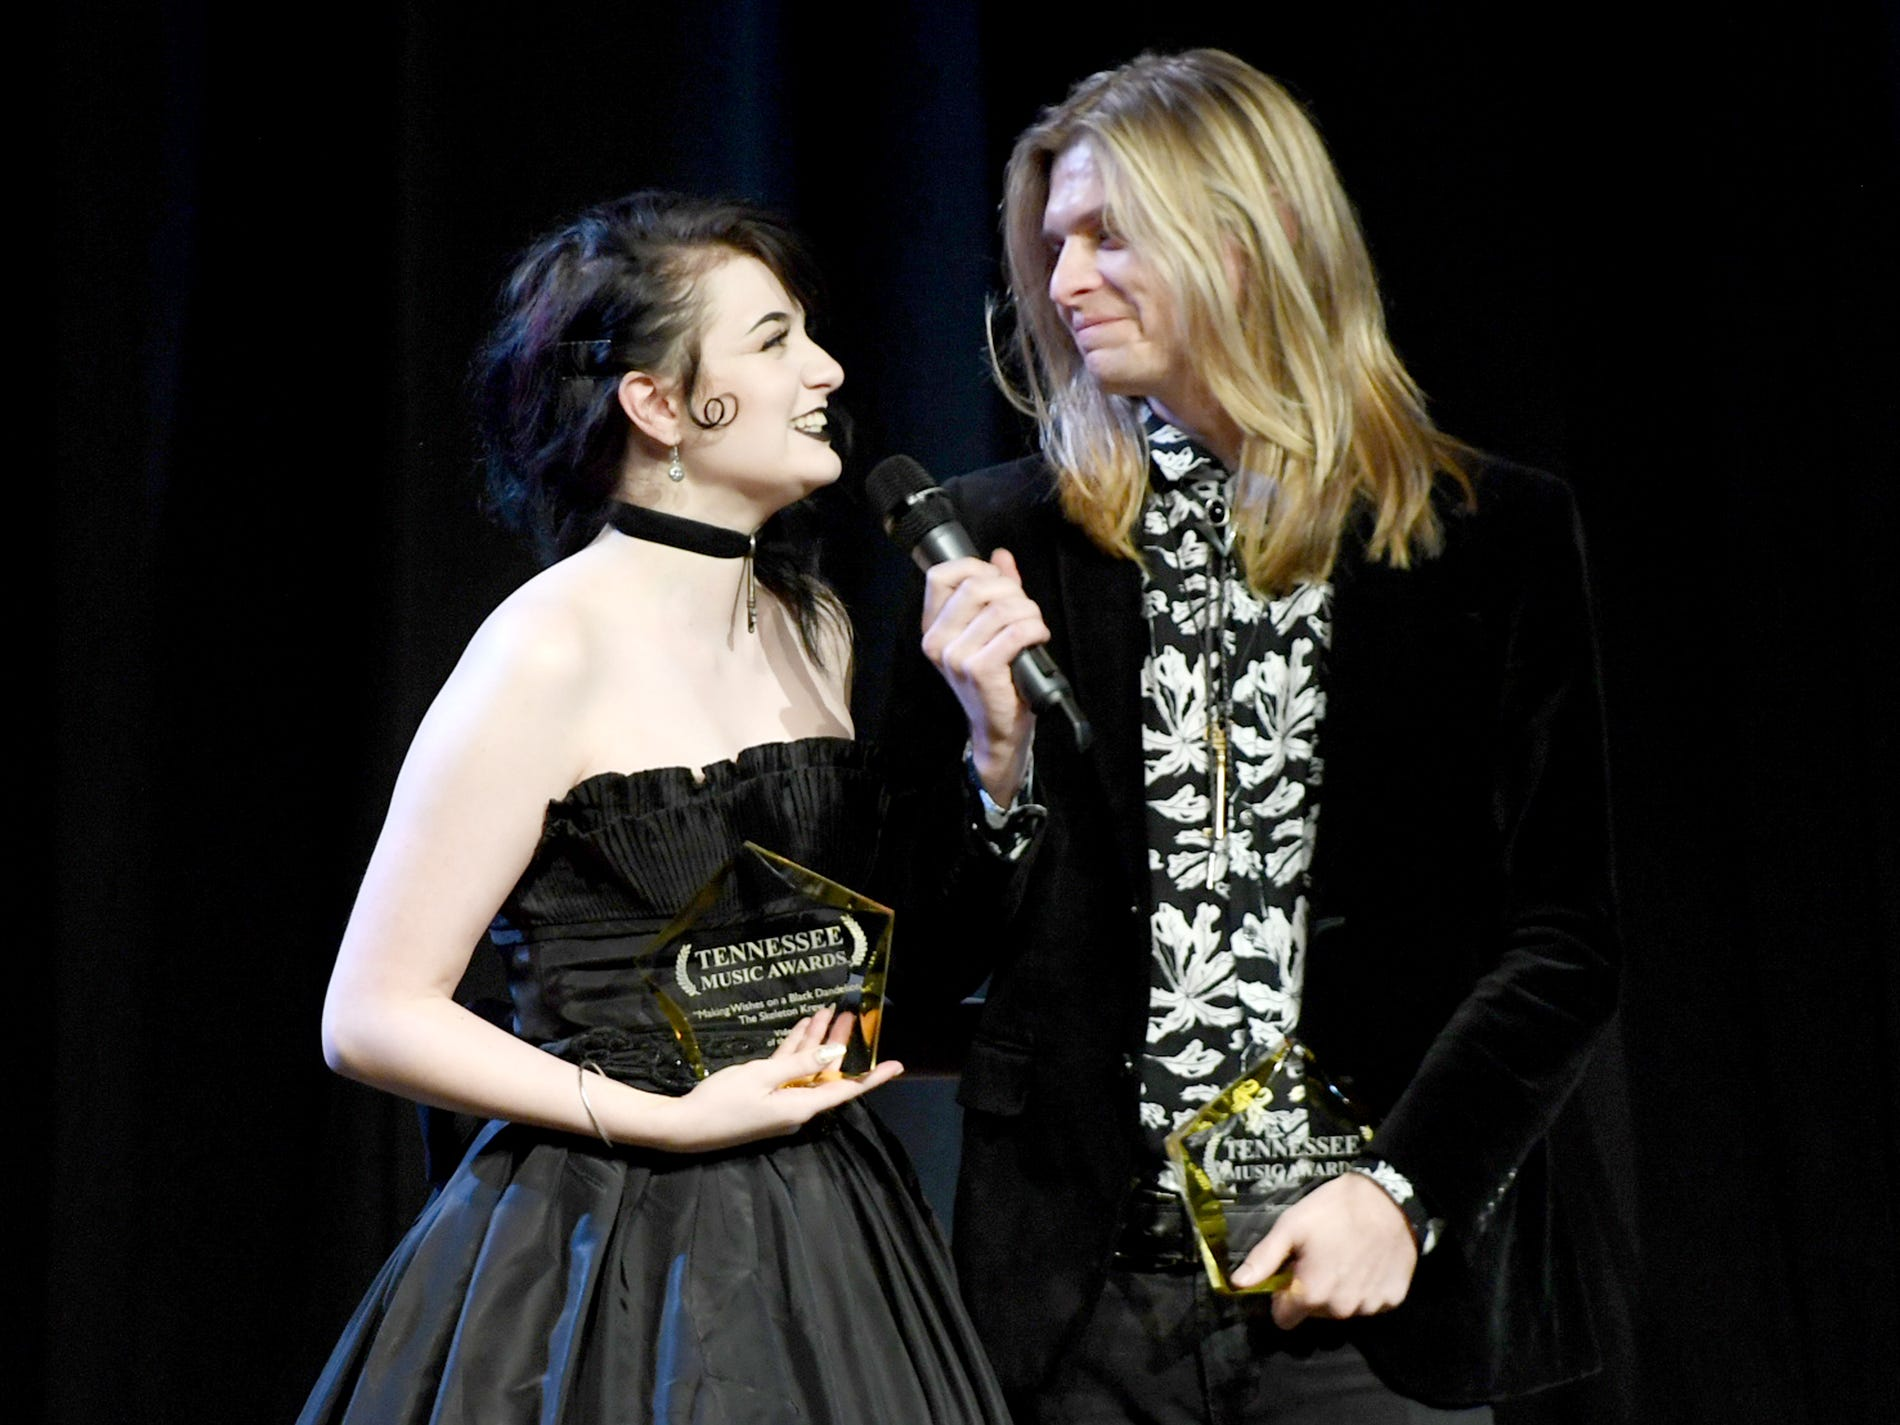 The Skeleton Krew give a speech after being awarded Video of the Year for Making Wishes on a Black Dandelion at the 2nd Annual Tennessee Music Awards, Monday, October 8, at University of Memphis Lambuth.